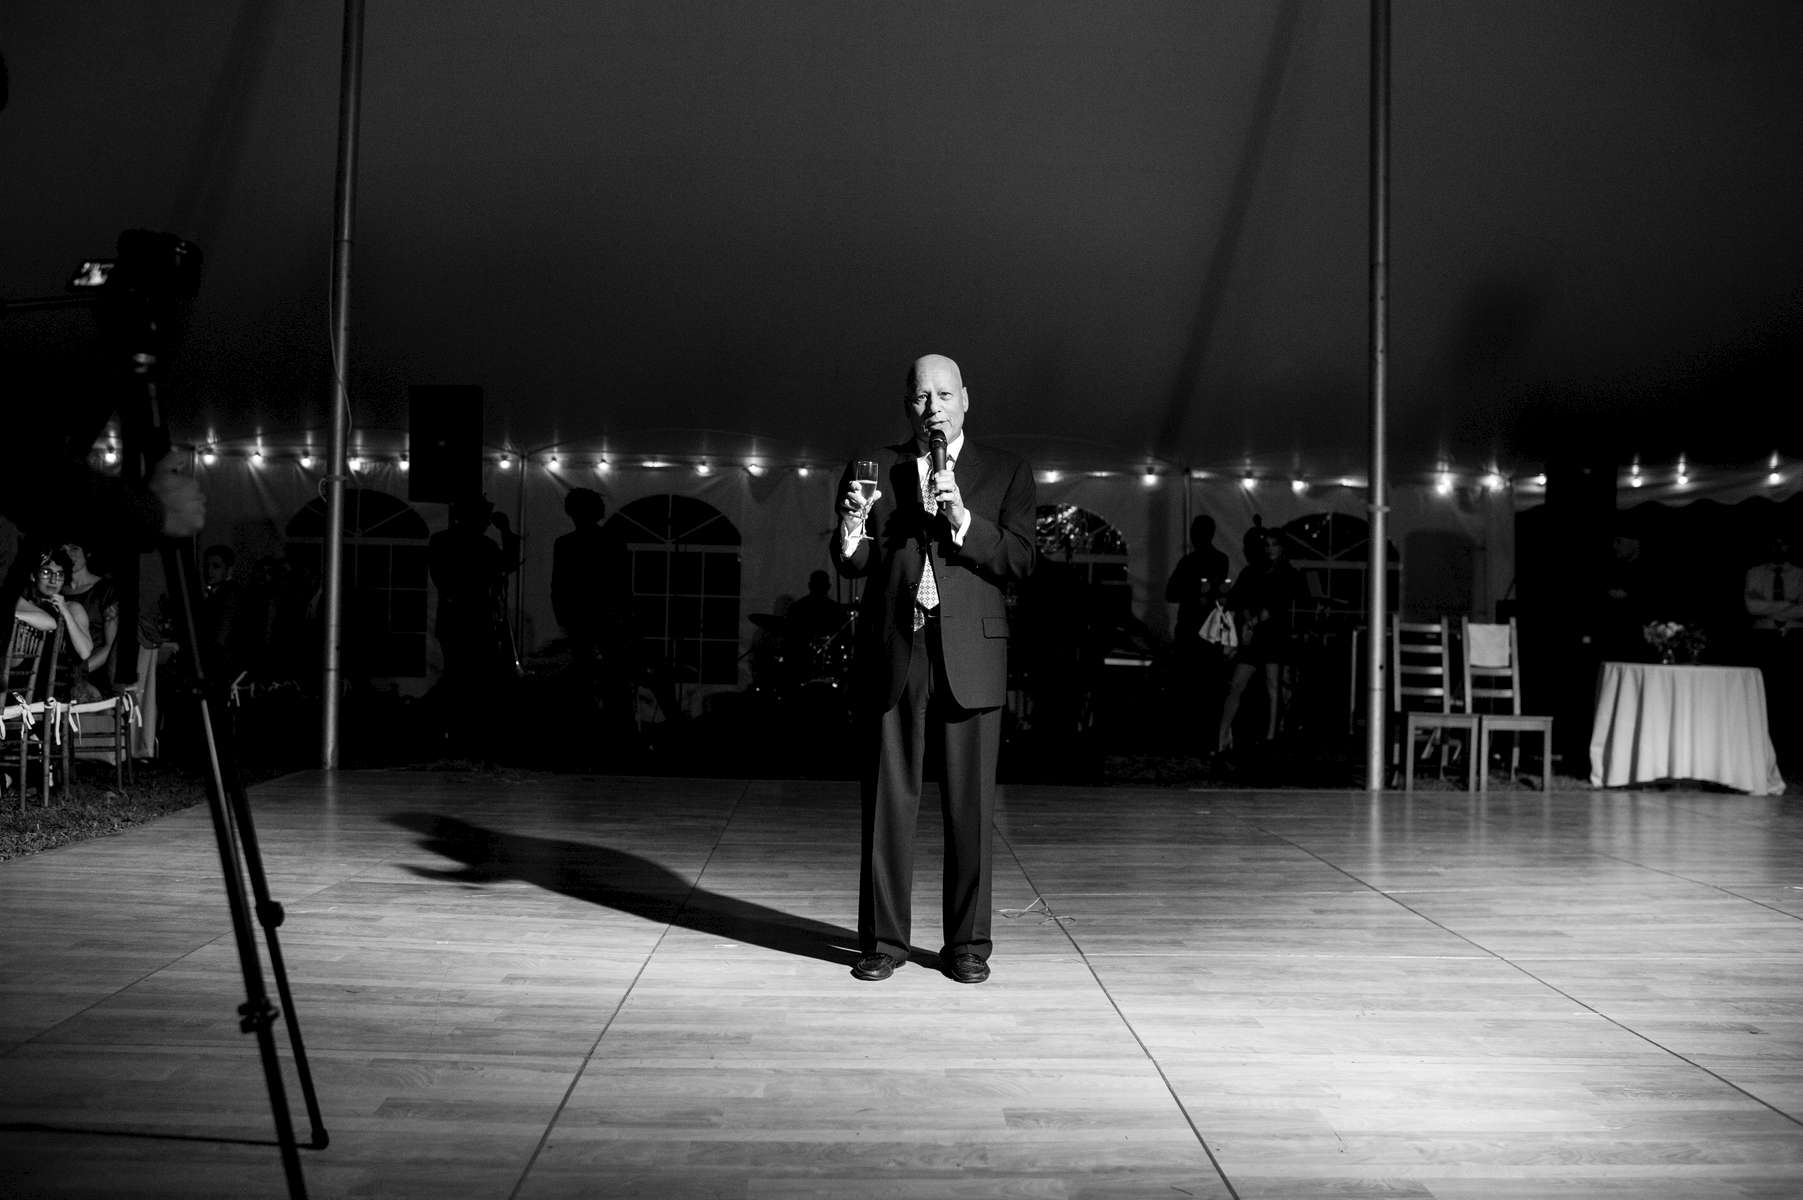 Howie Borowick takes center stage at daughter Nancy's wedding to give his father-of-the-bride speech. Highland, New York. October, 2013.